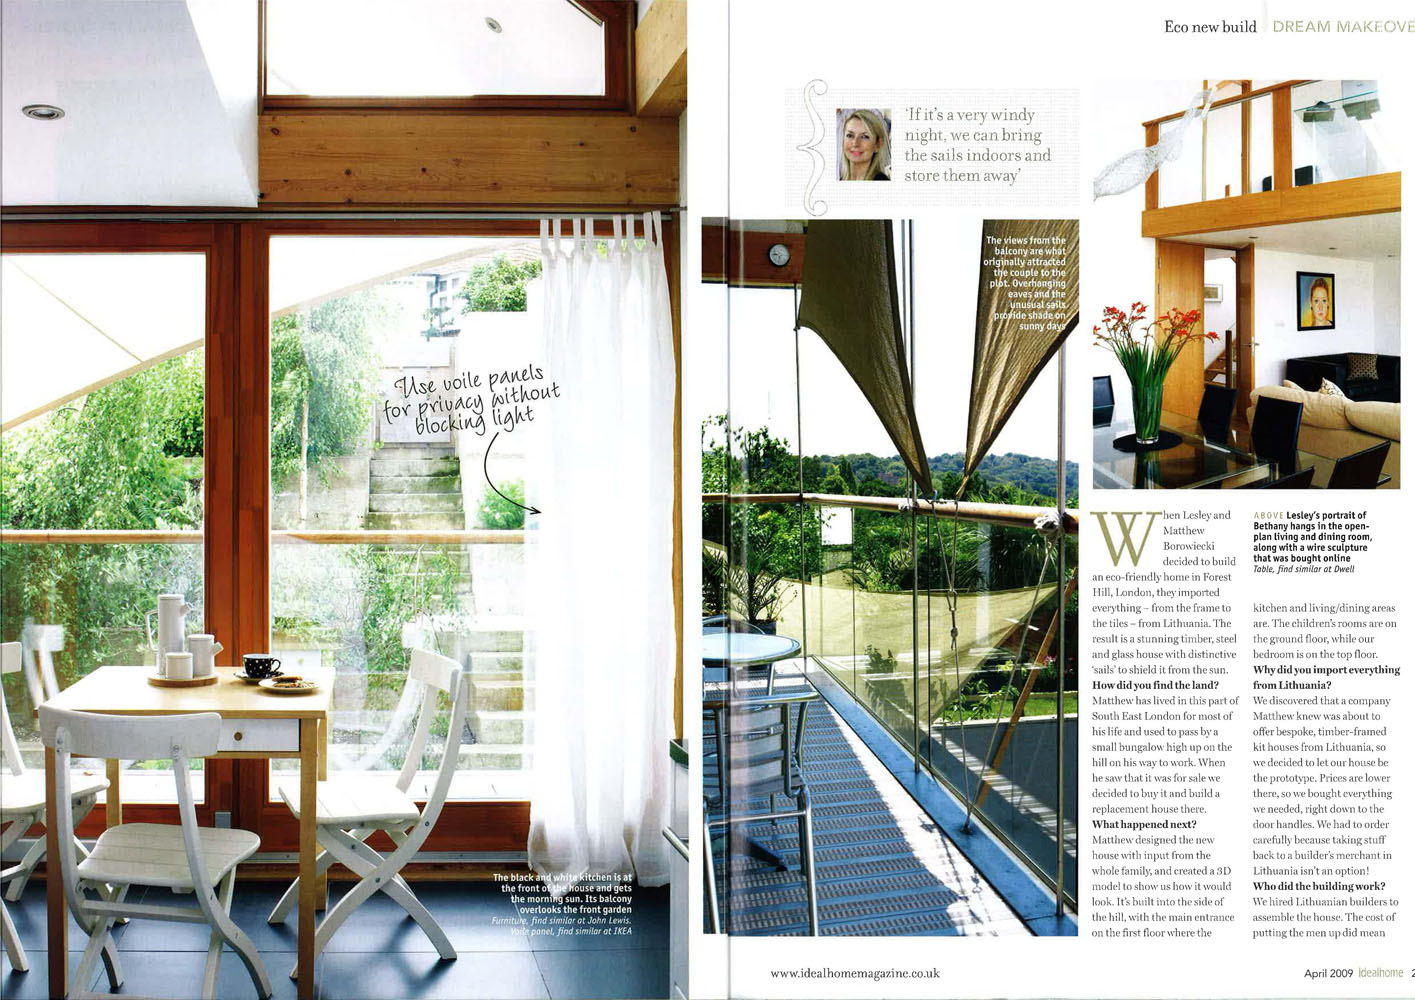 ideal home article.pdf_Page_3.jpg